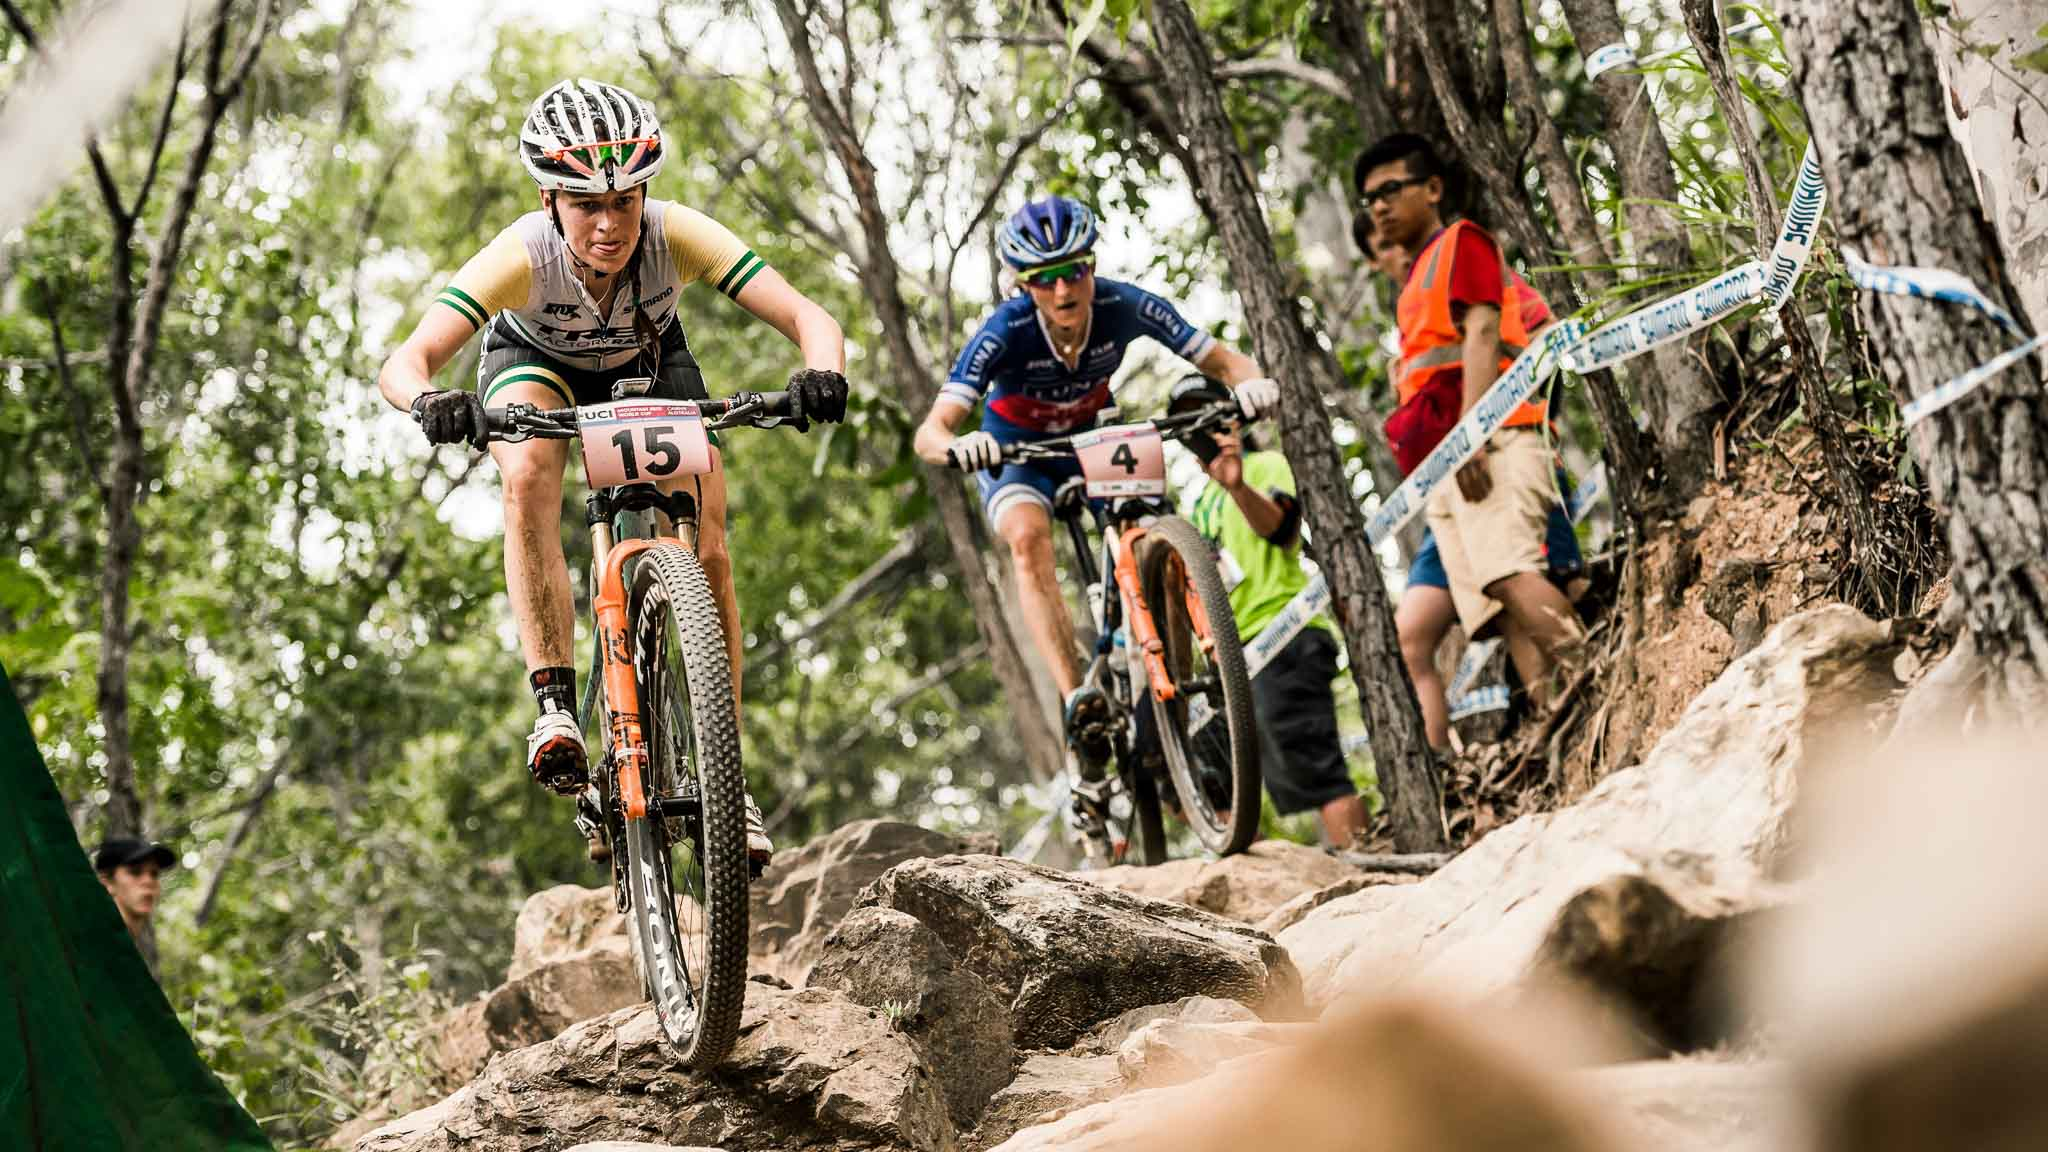 Rebecca Henderson performs at the UCI XCO World Tour in Cairns on April 24th 2016 // Bartek Wolinski/Red Bull Content Pool // P-20160424-00204 // Usage for editorial use only // Please go to www.redbullcontentpool.com for further information. //